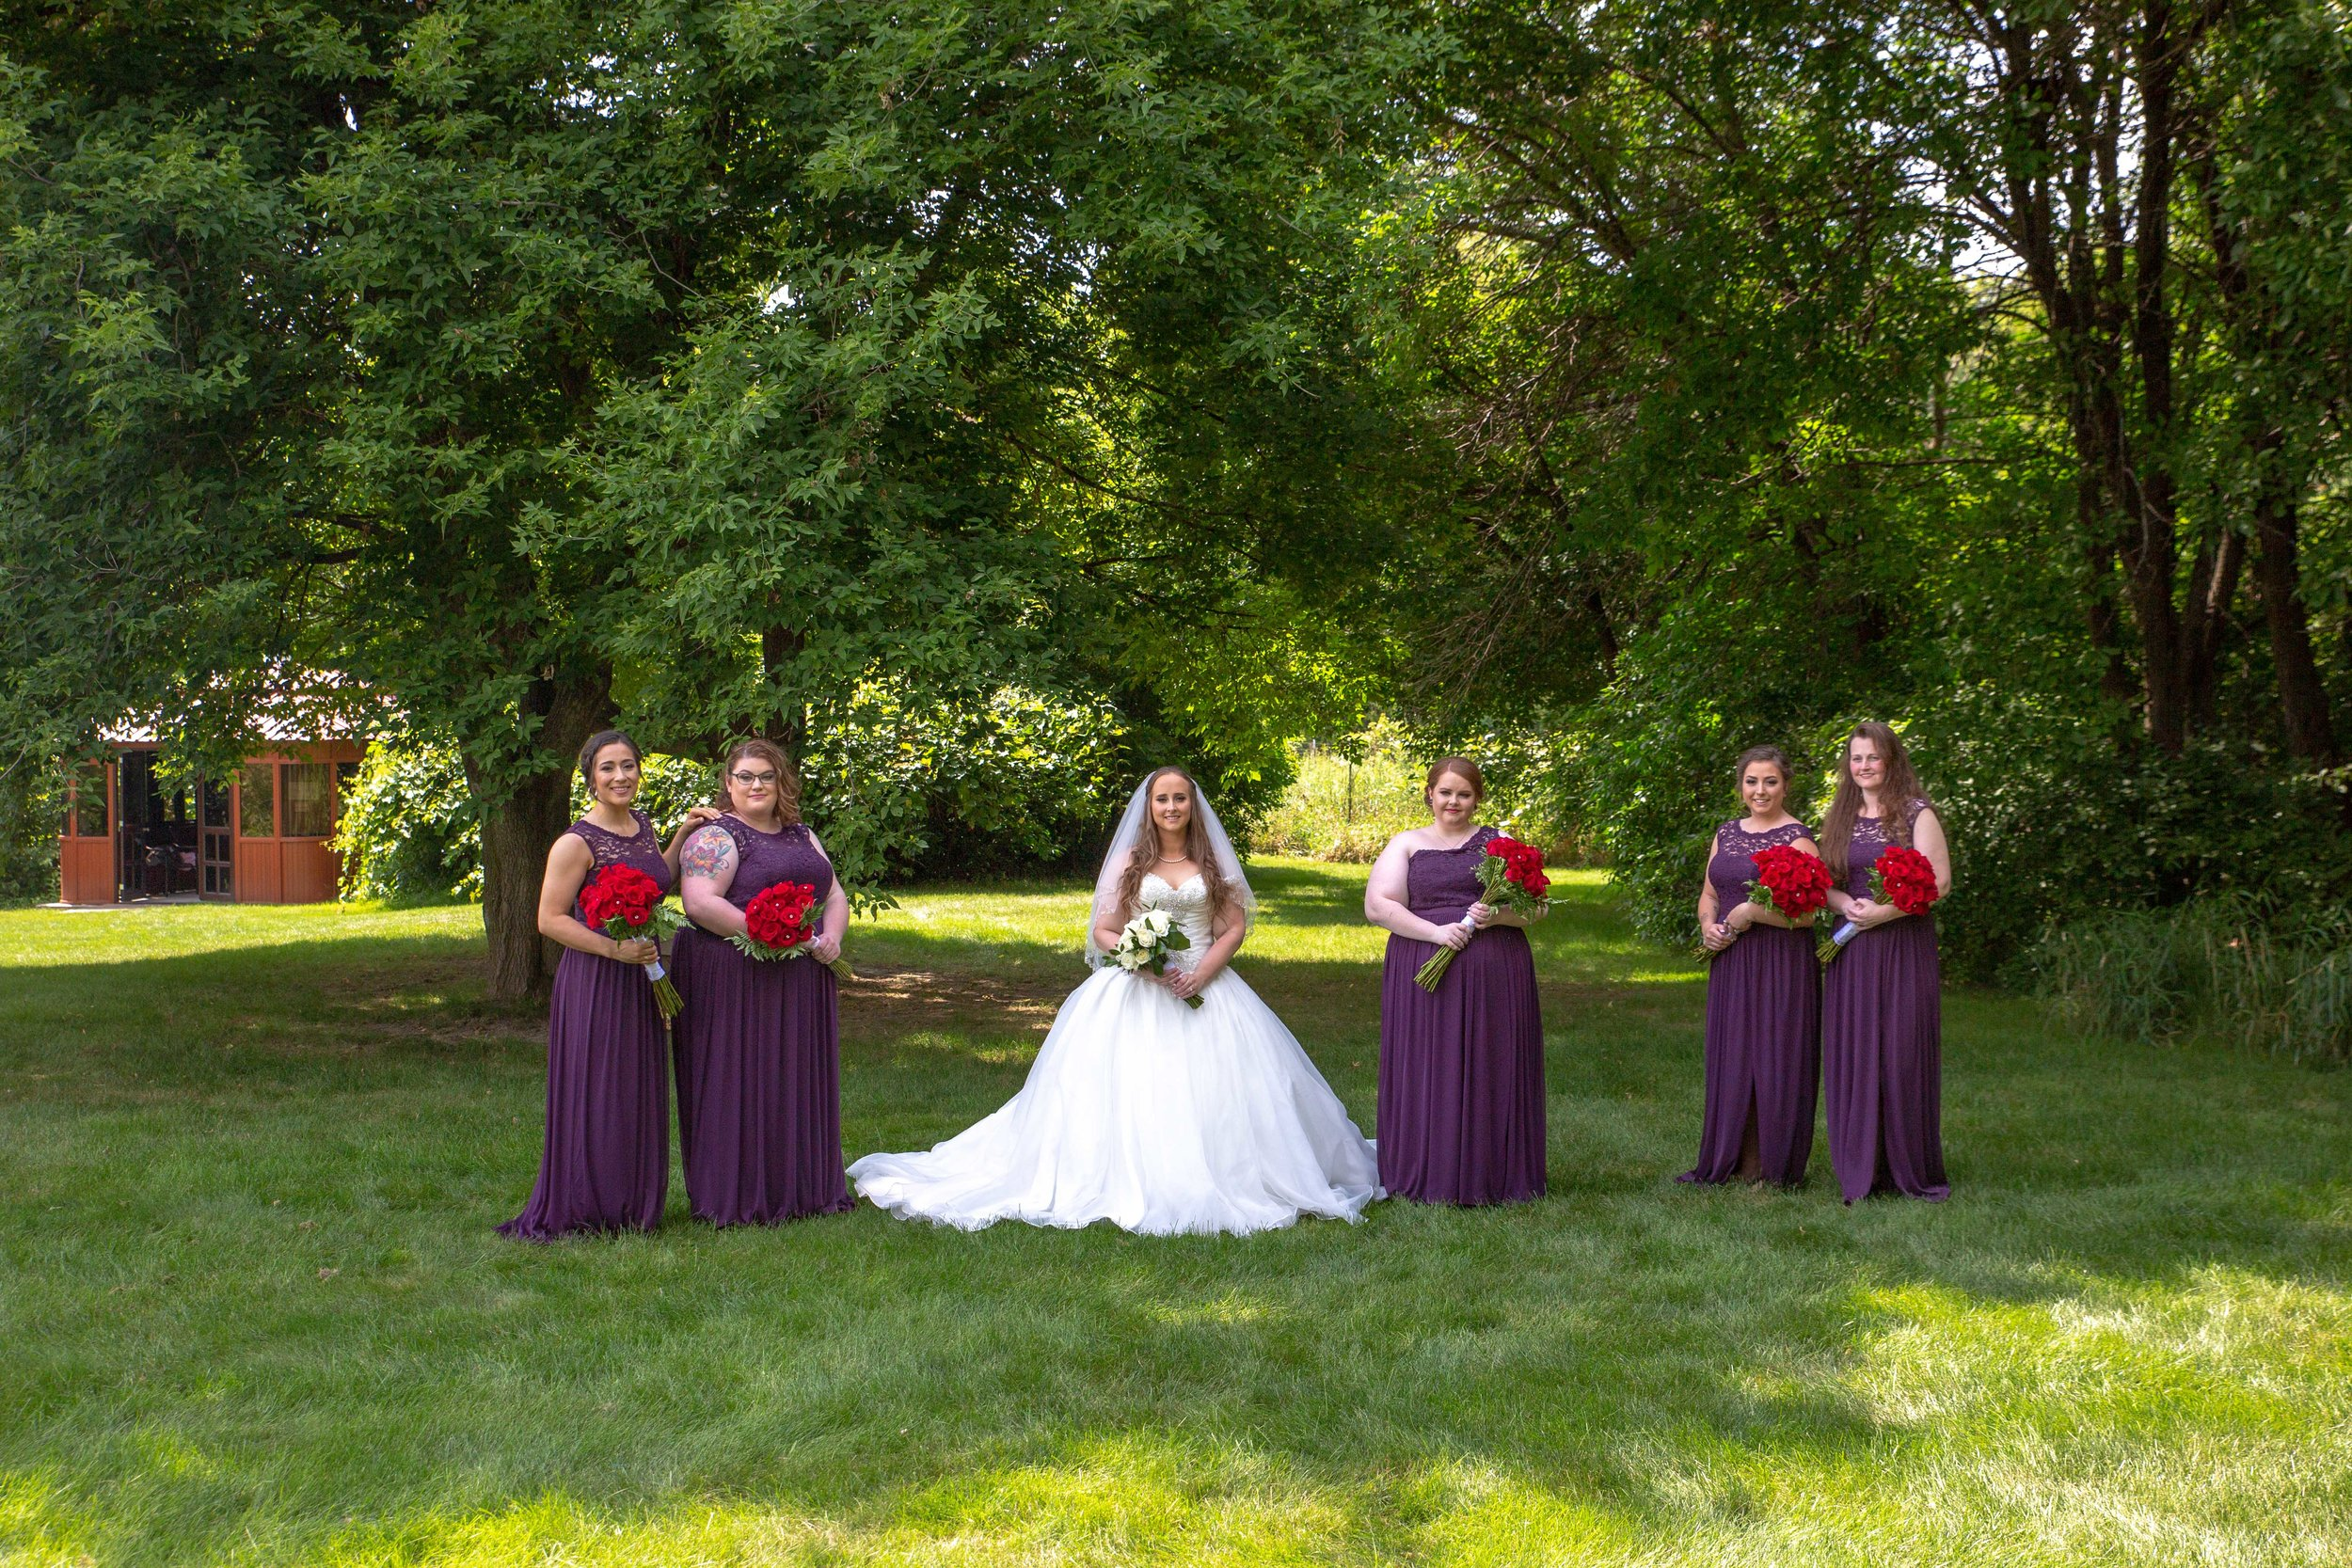 Cindyrella's Garden, Fab Weddings, outdoor Minnesota ceremony, Rosemount wedding, south metro, bridal party